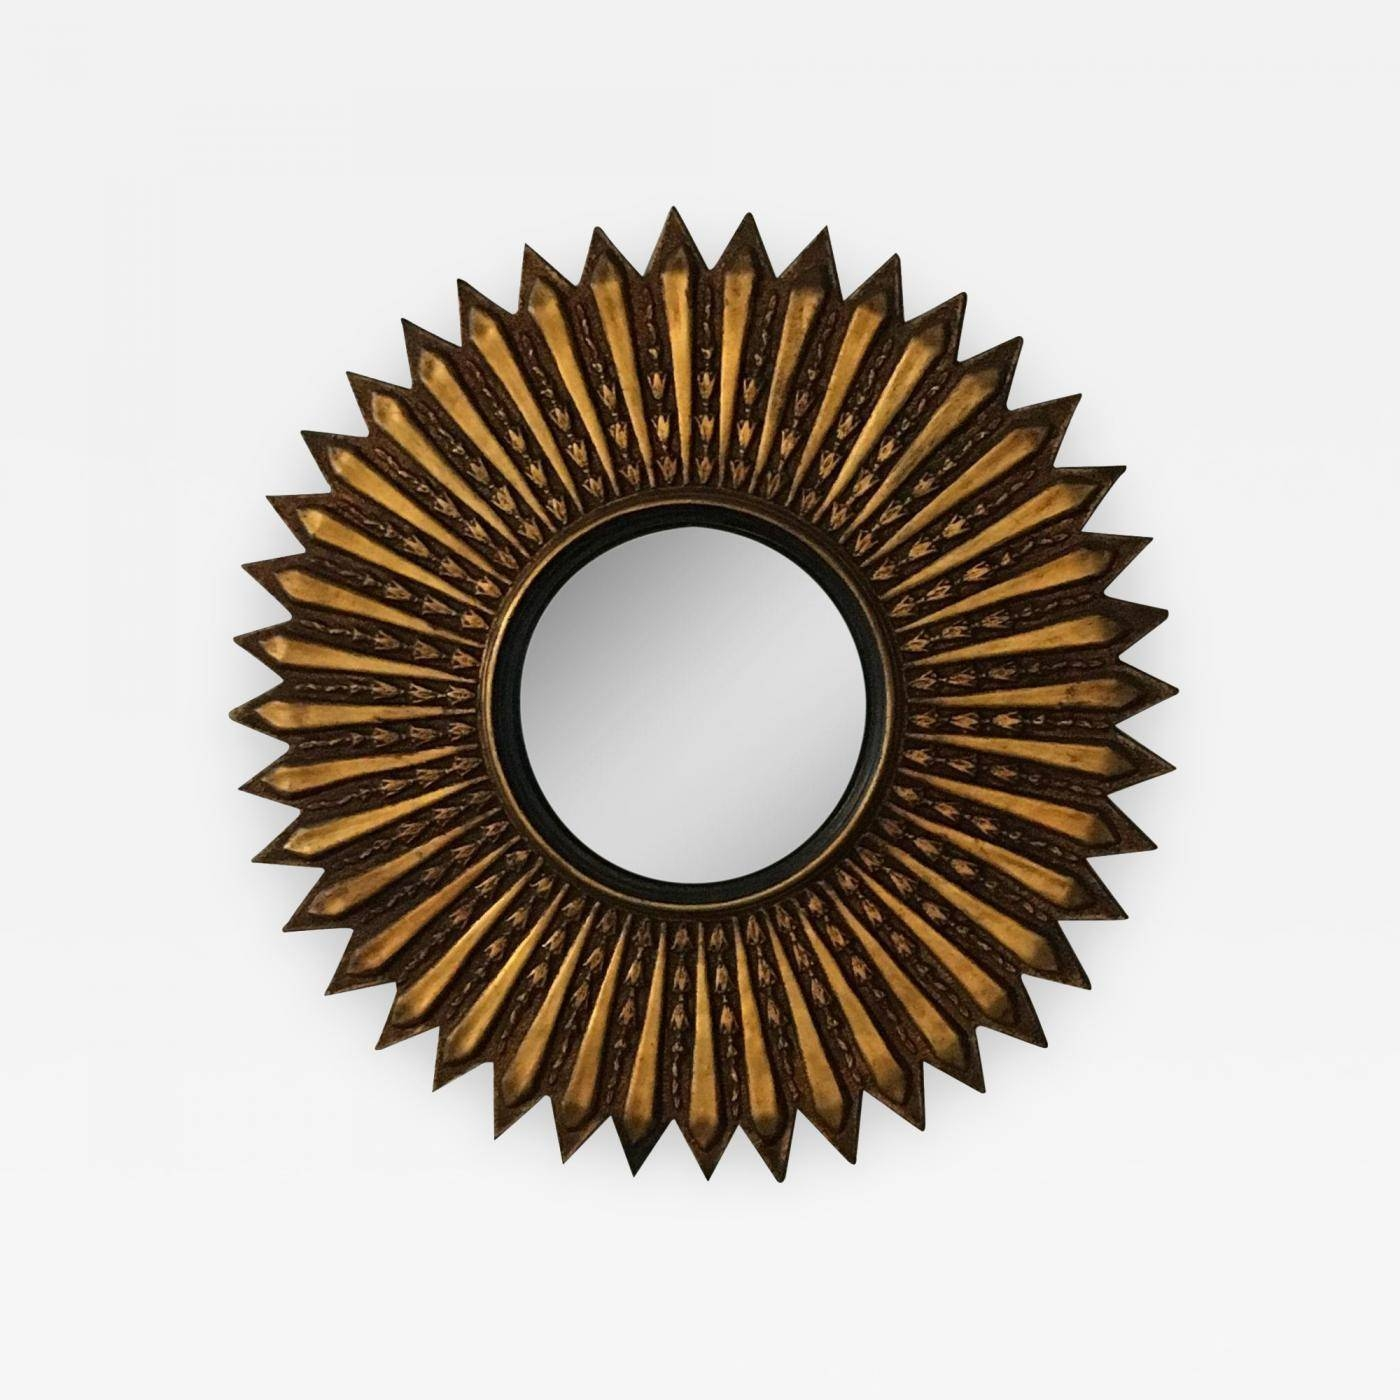 Mid Century Modern Argentinian Gilded Wood Starburst Convex Mirror Regarding Starburst Convex Mirrors (View 8 of 15)